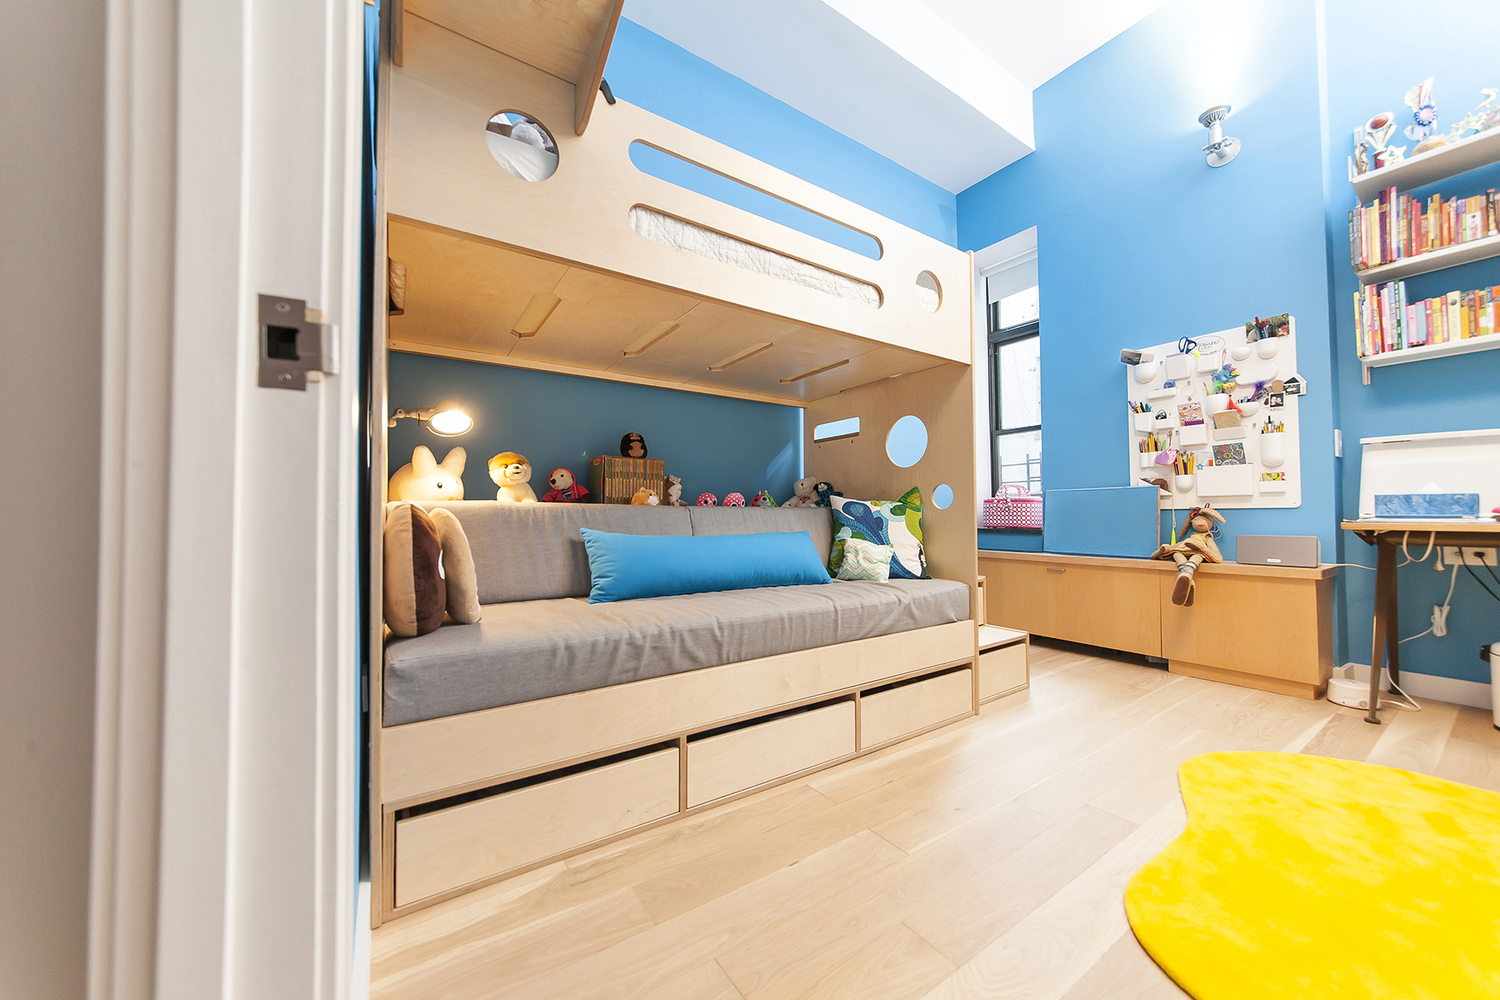 Casa kids custom bunk bed with Daybed underneath.